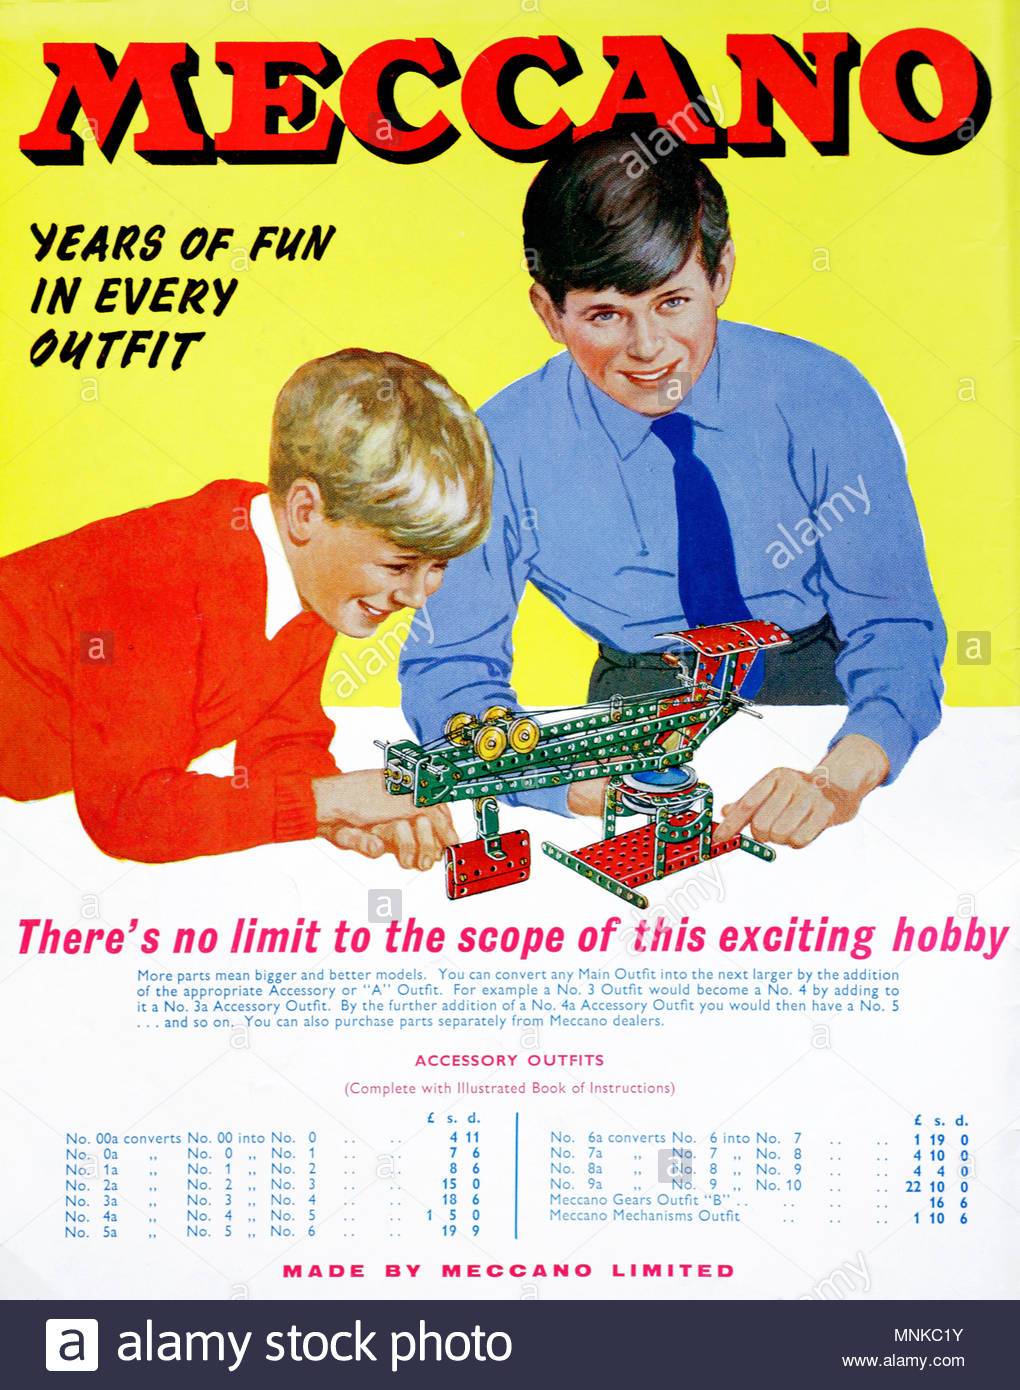 Meccano, vintage advertising from 1961 - Stock Image